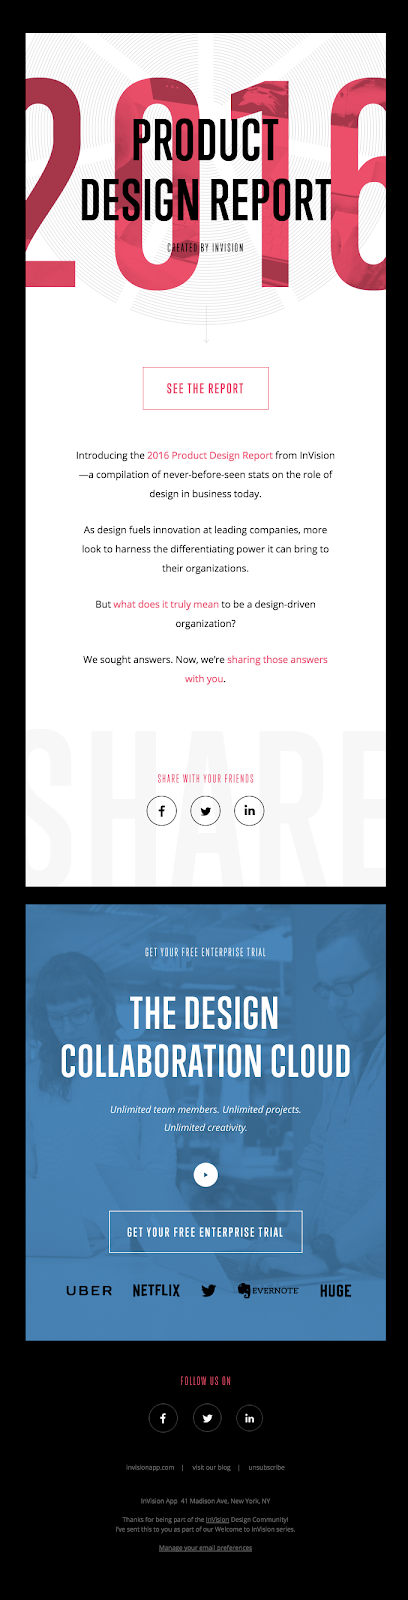 Invision email